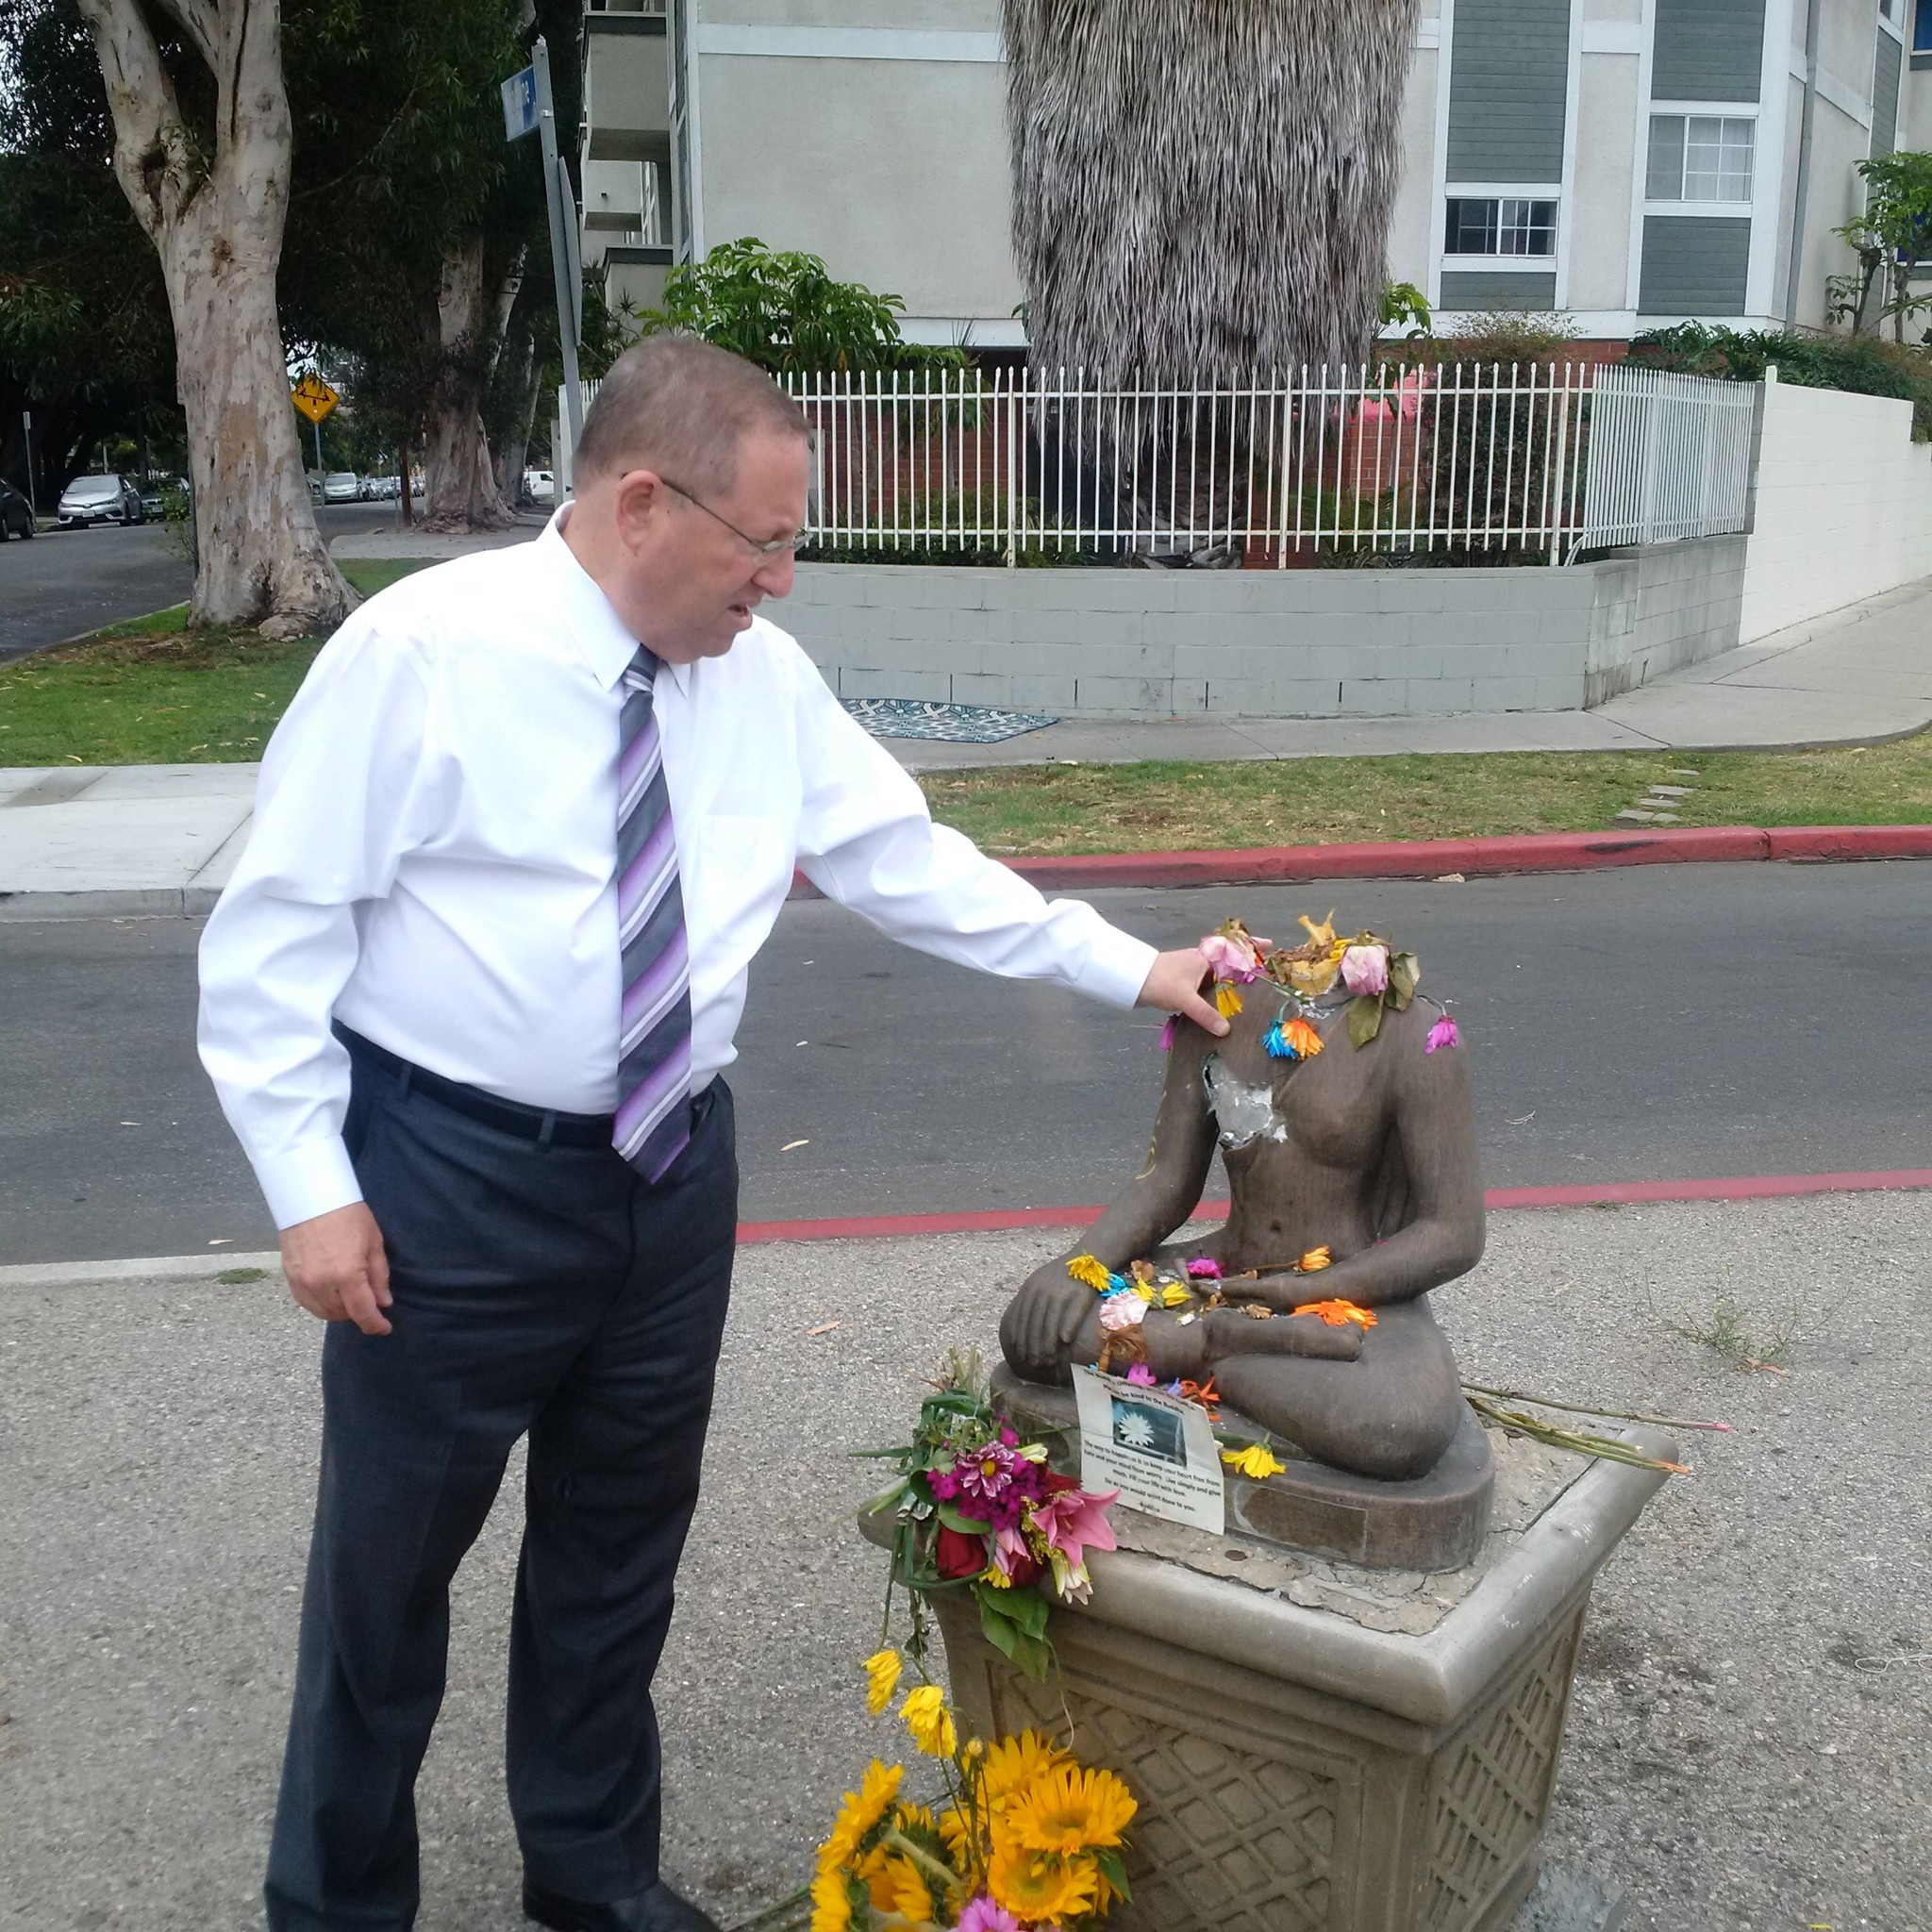 Councilman Paul Koretz, whose district includes Palms, stops by the community to see the damaged statue.